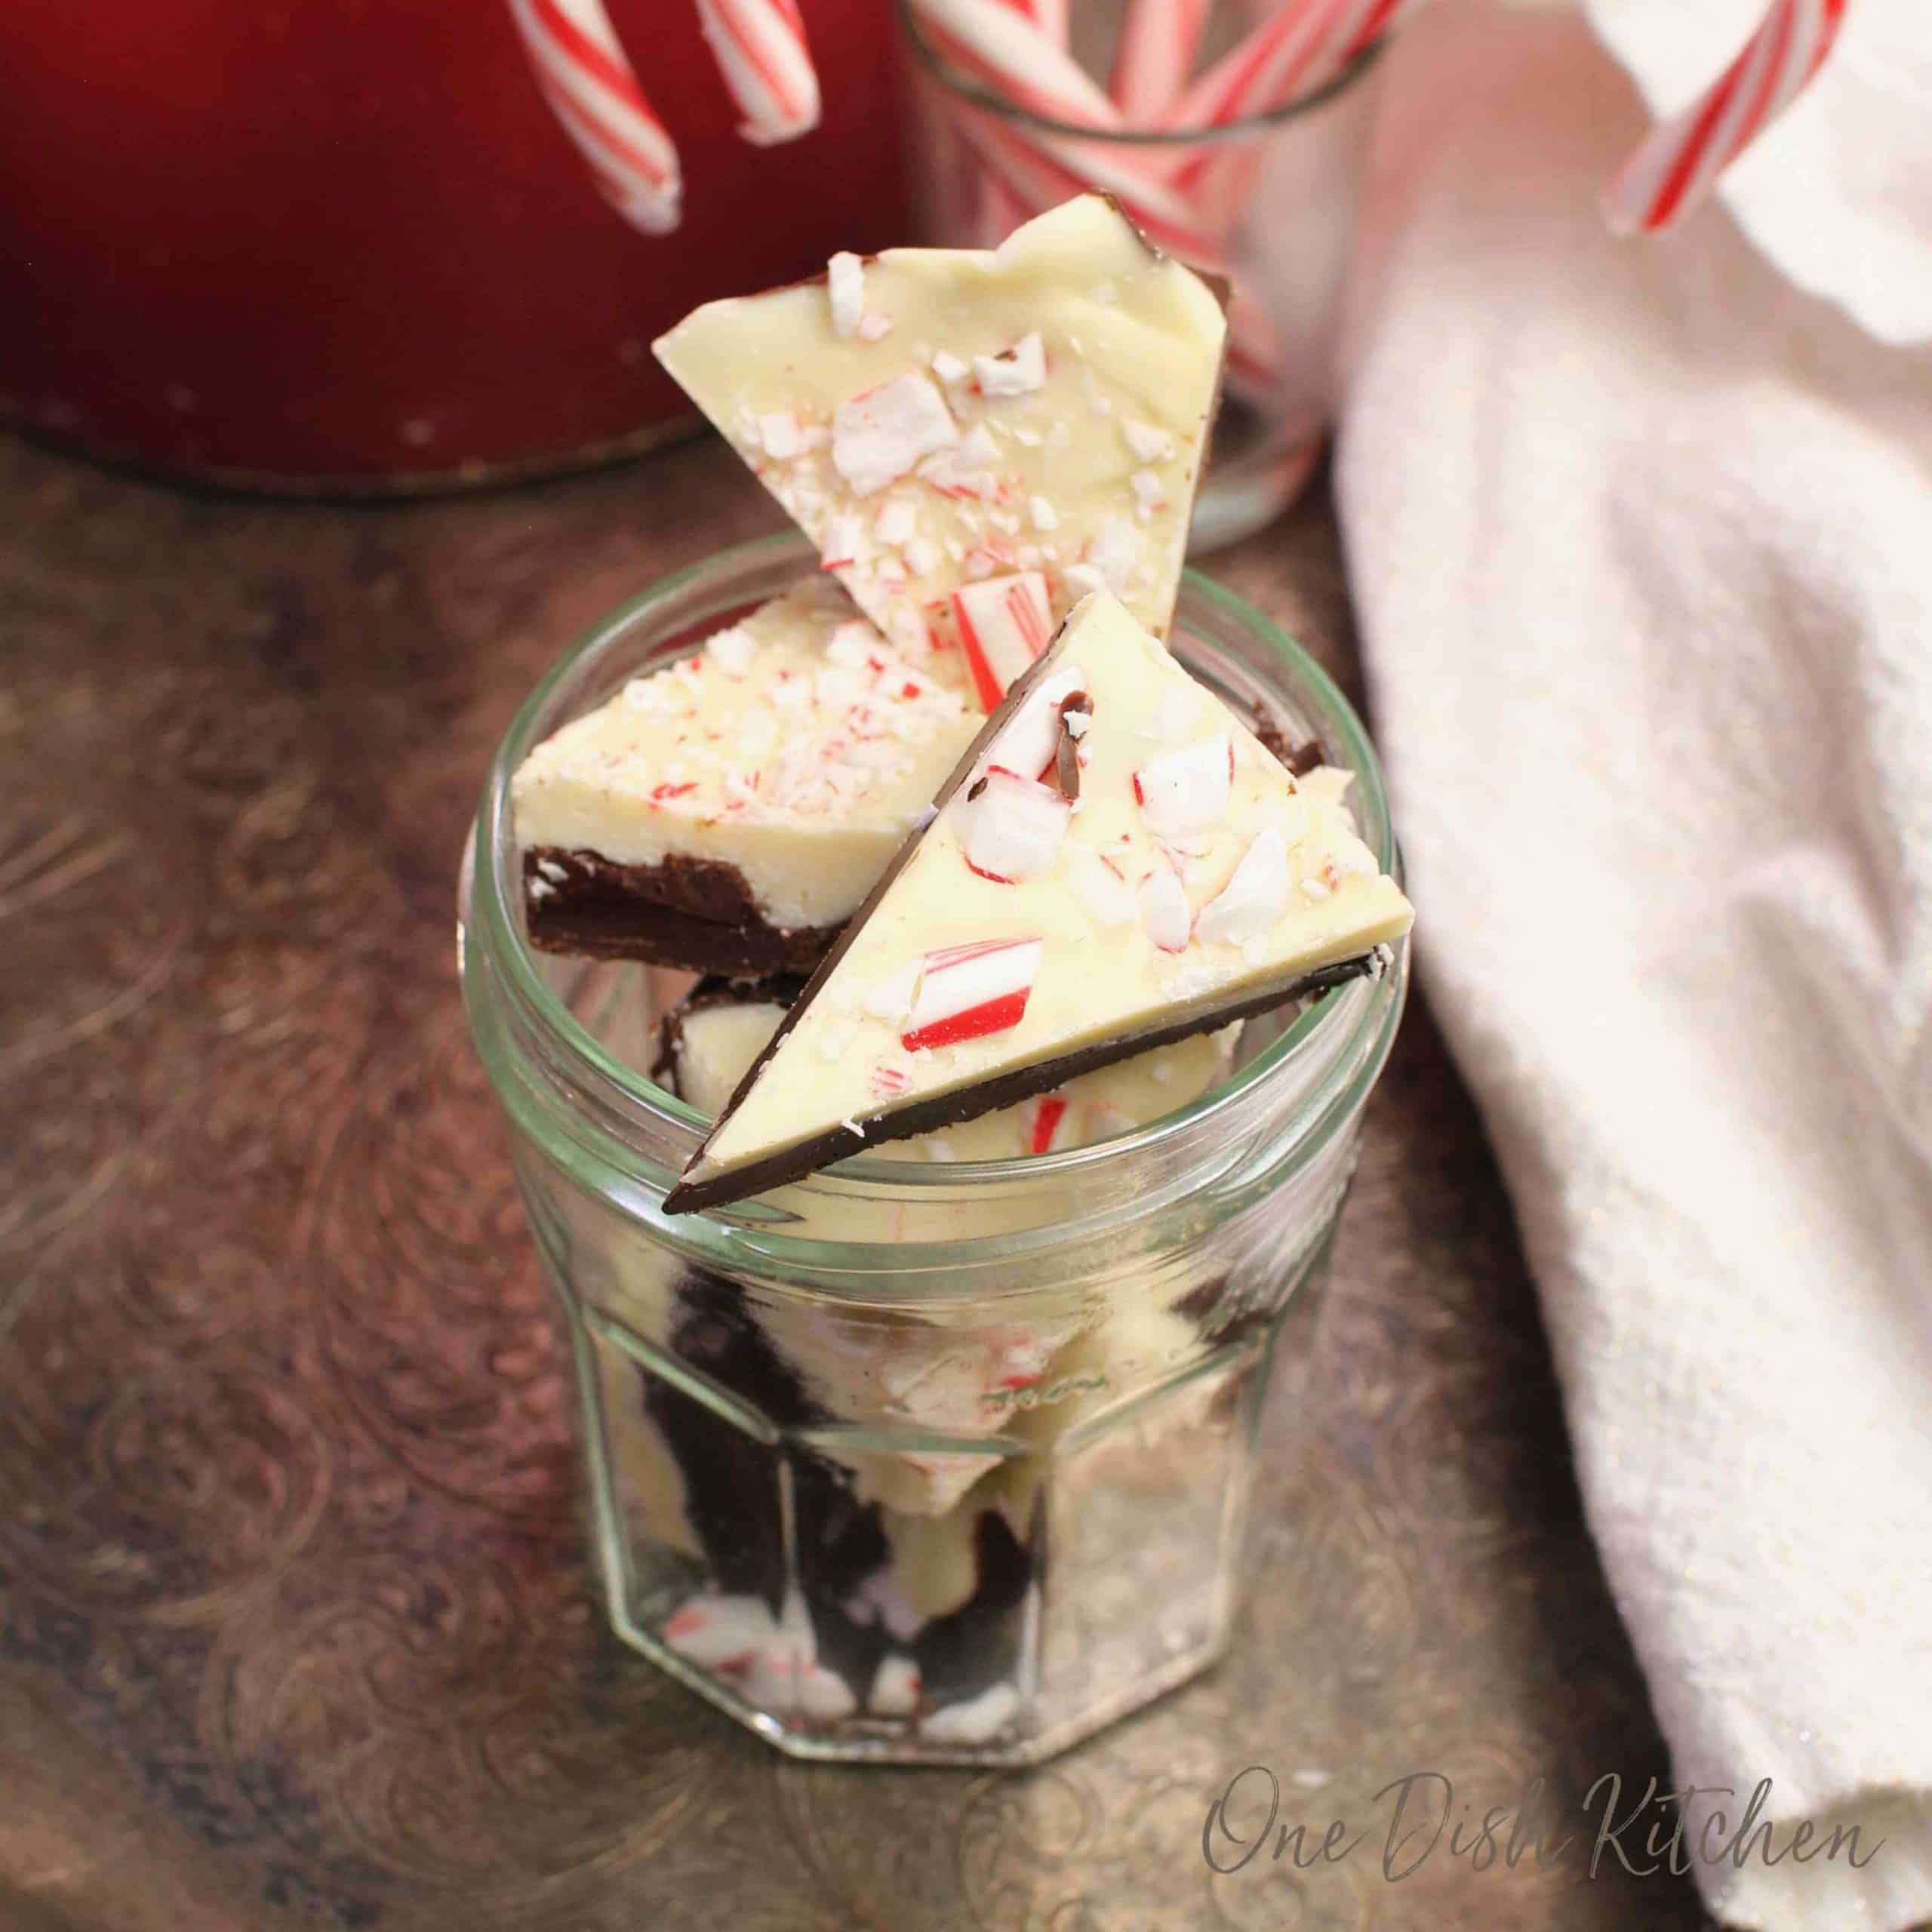 chocolate candies cut into wedges topped with crushed peppermint candy.